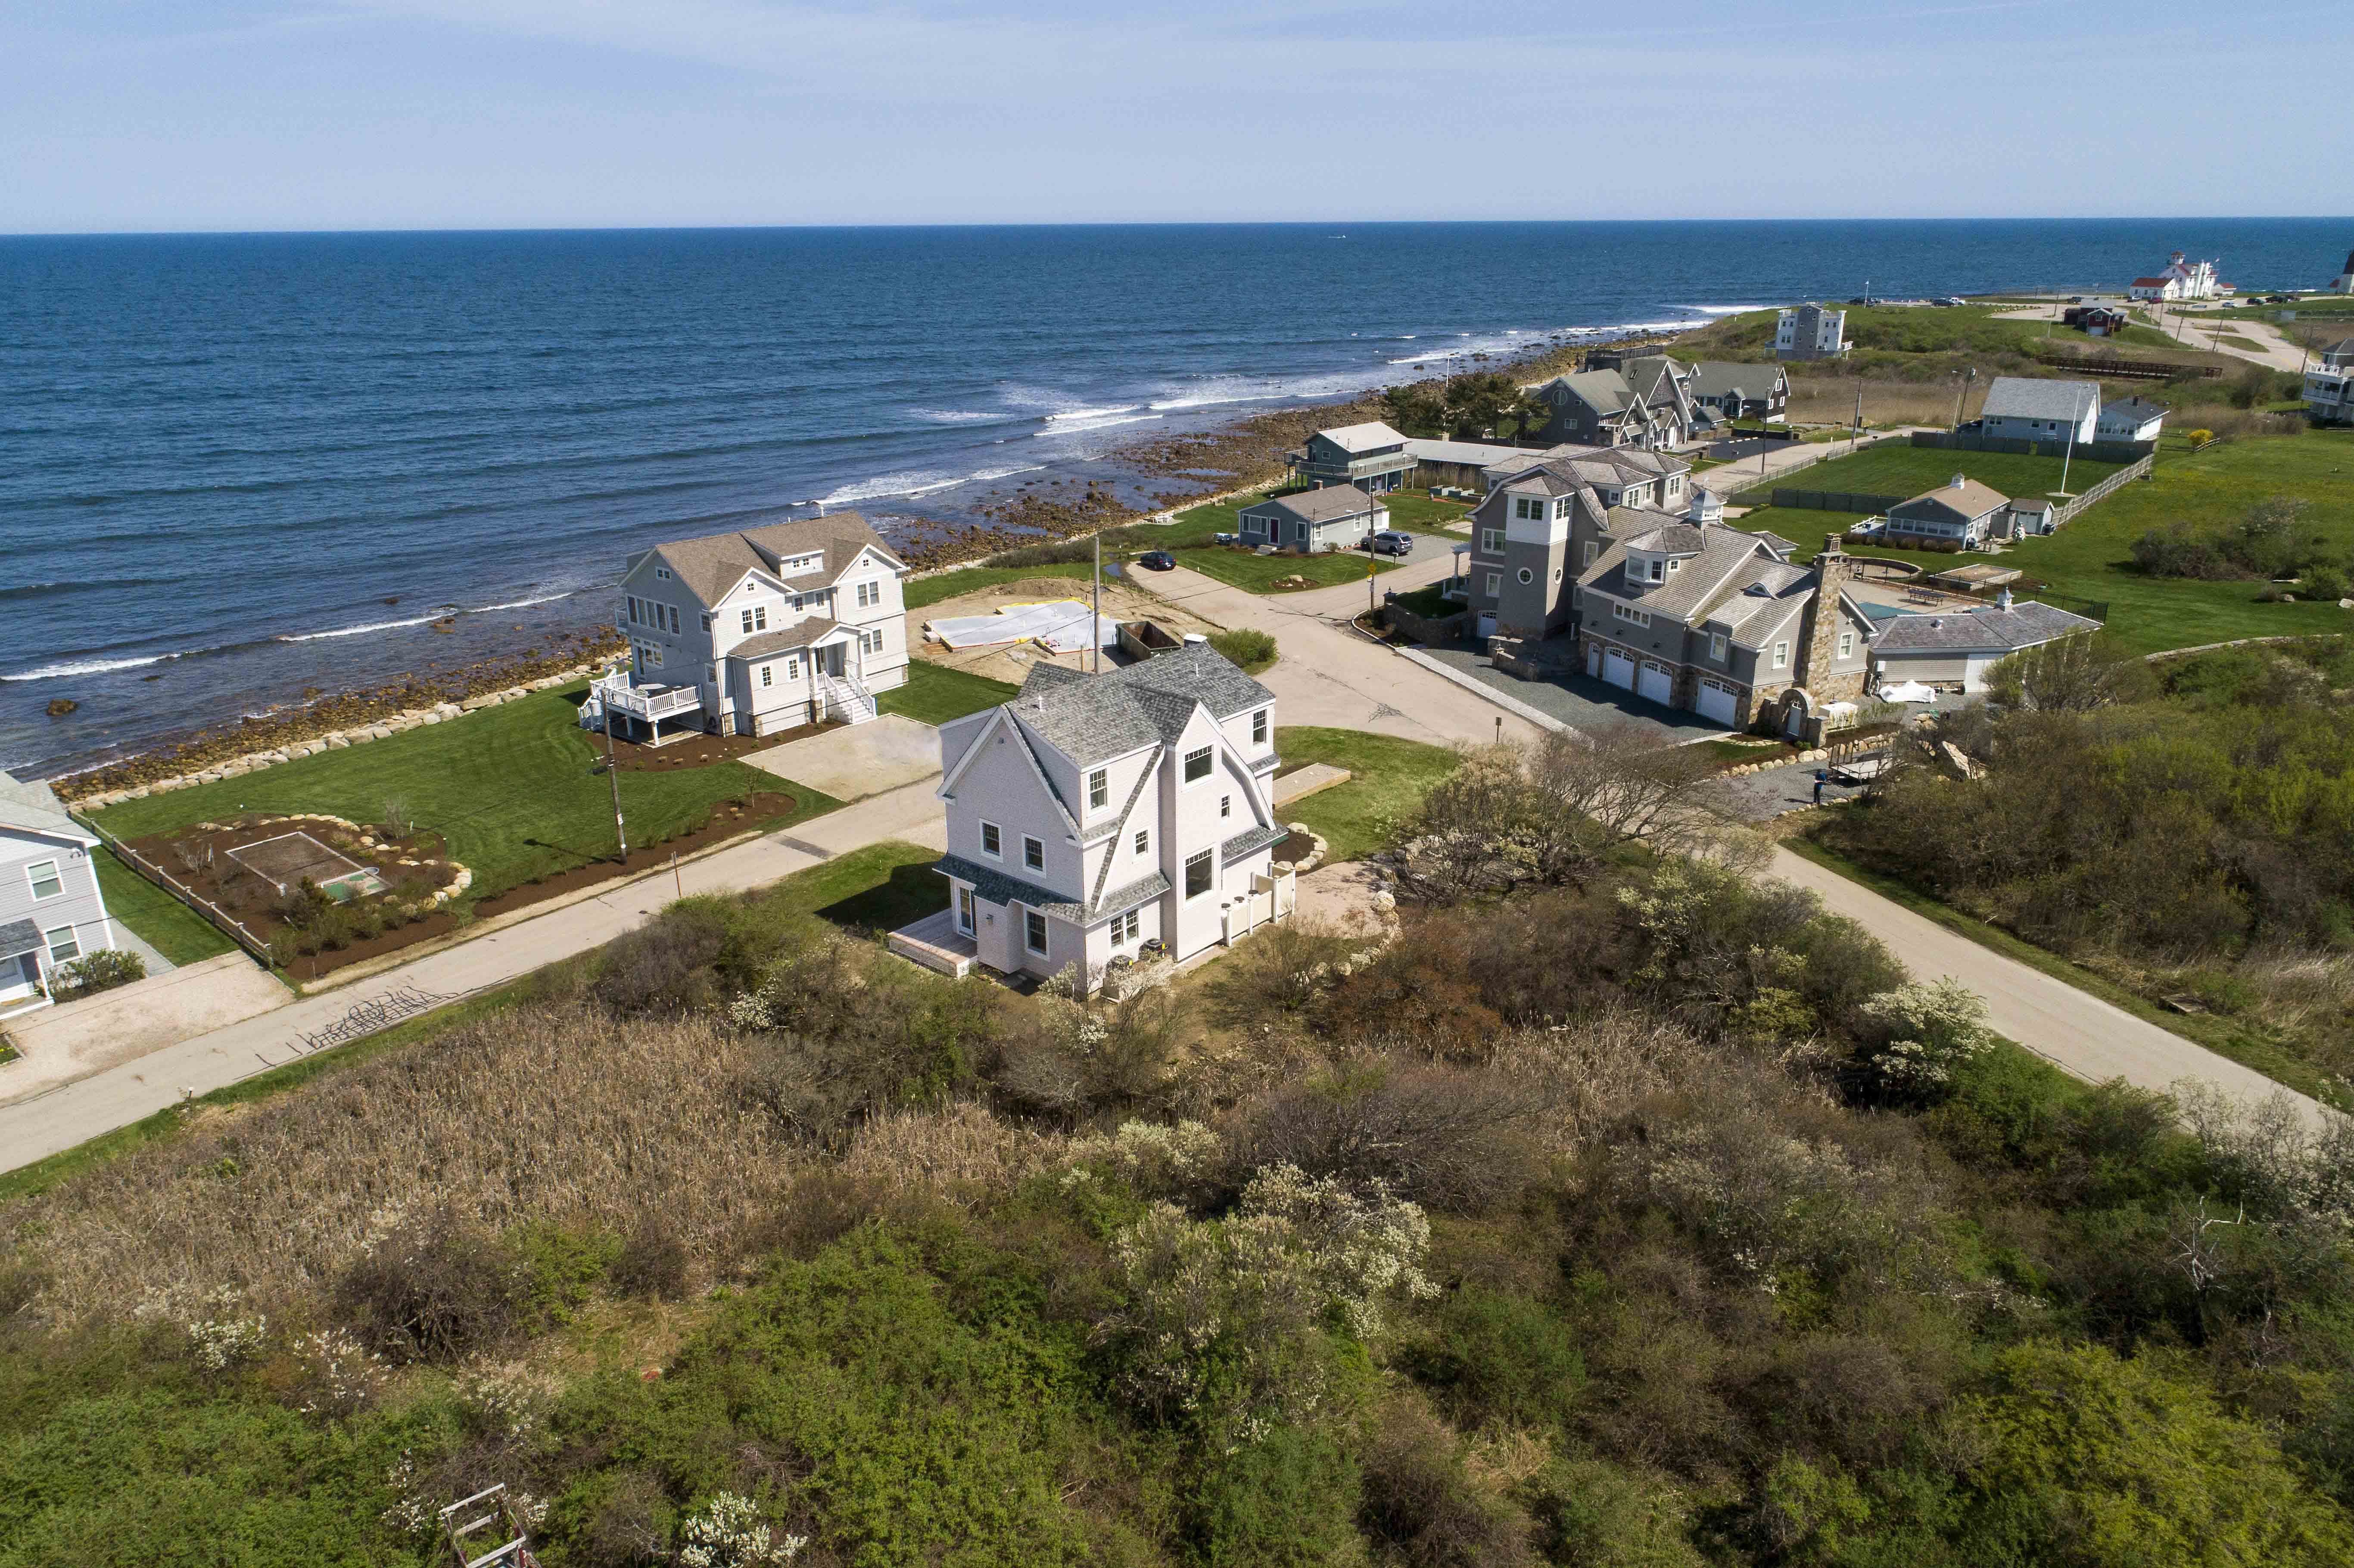 POINT JUDITH NEW CONSTRUCTION SELLS FOR $1.507M, WITH LILA DELMAN REAL ESTATE ON BOTH SIDES OF THE TRANSACTION